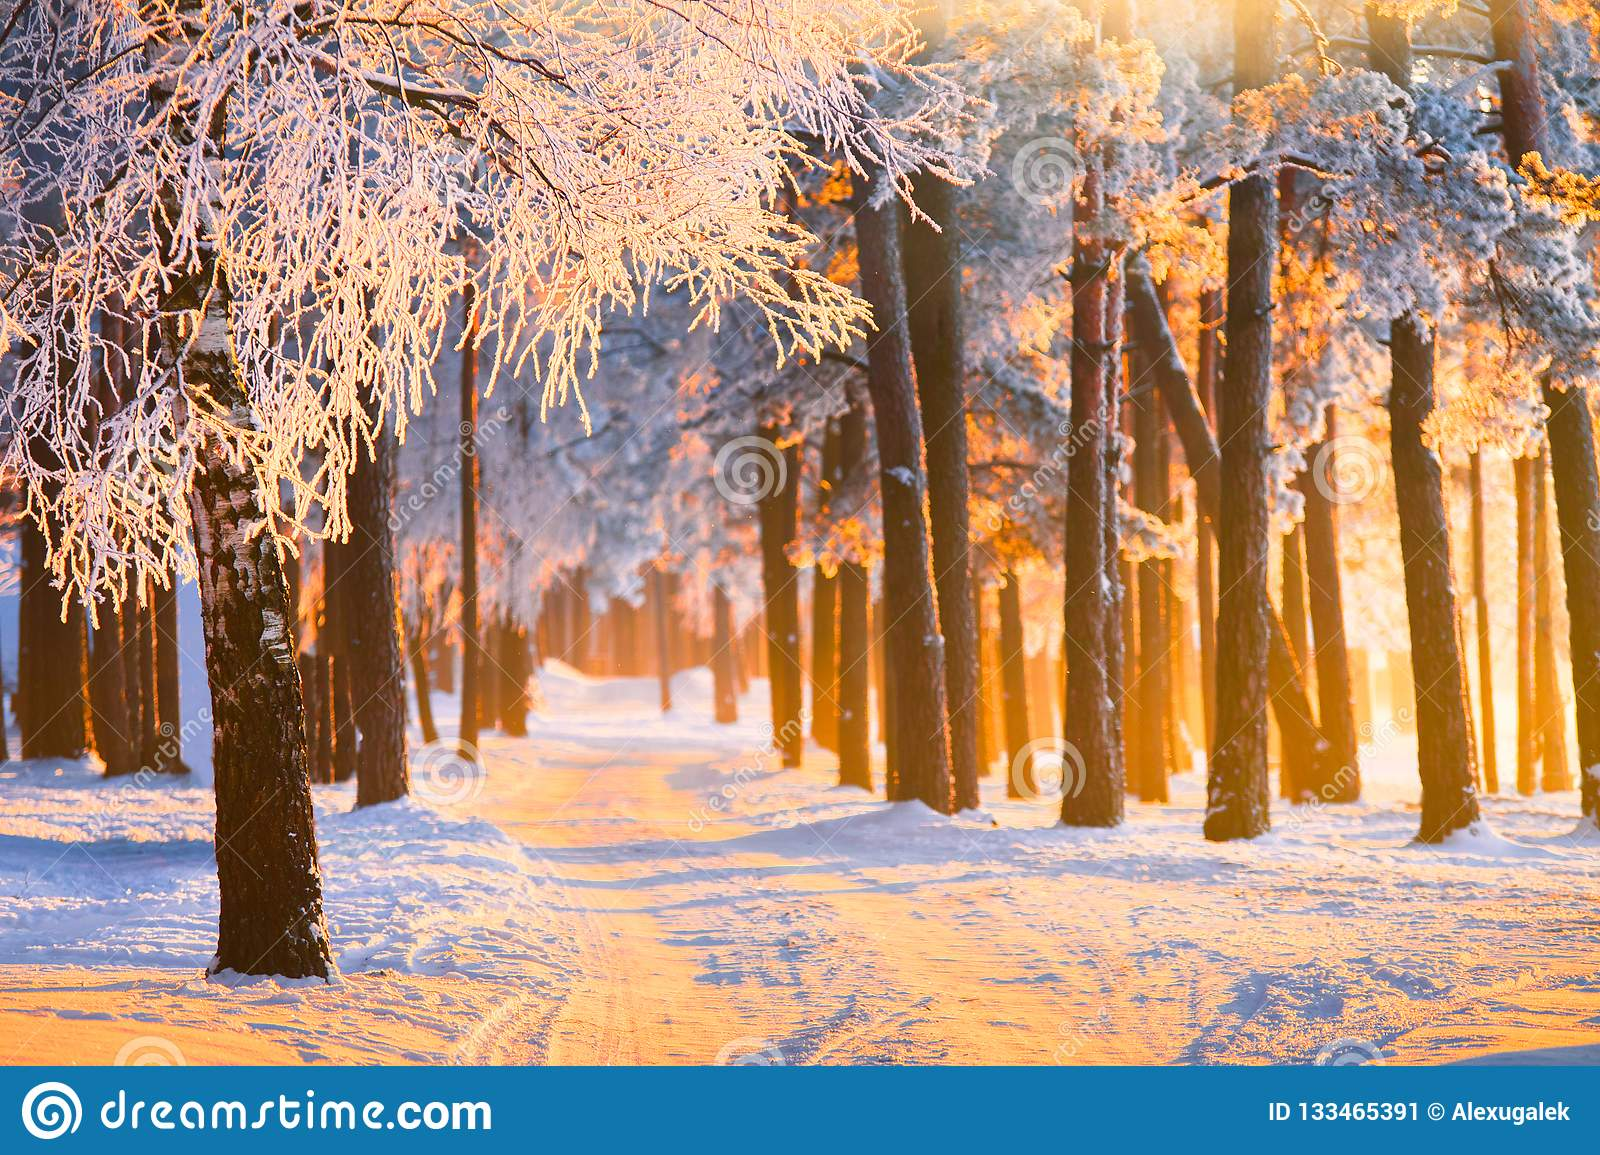 Winter forest with magical sunlight. Landscape with frosty winter forest on Christmas morning.